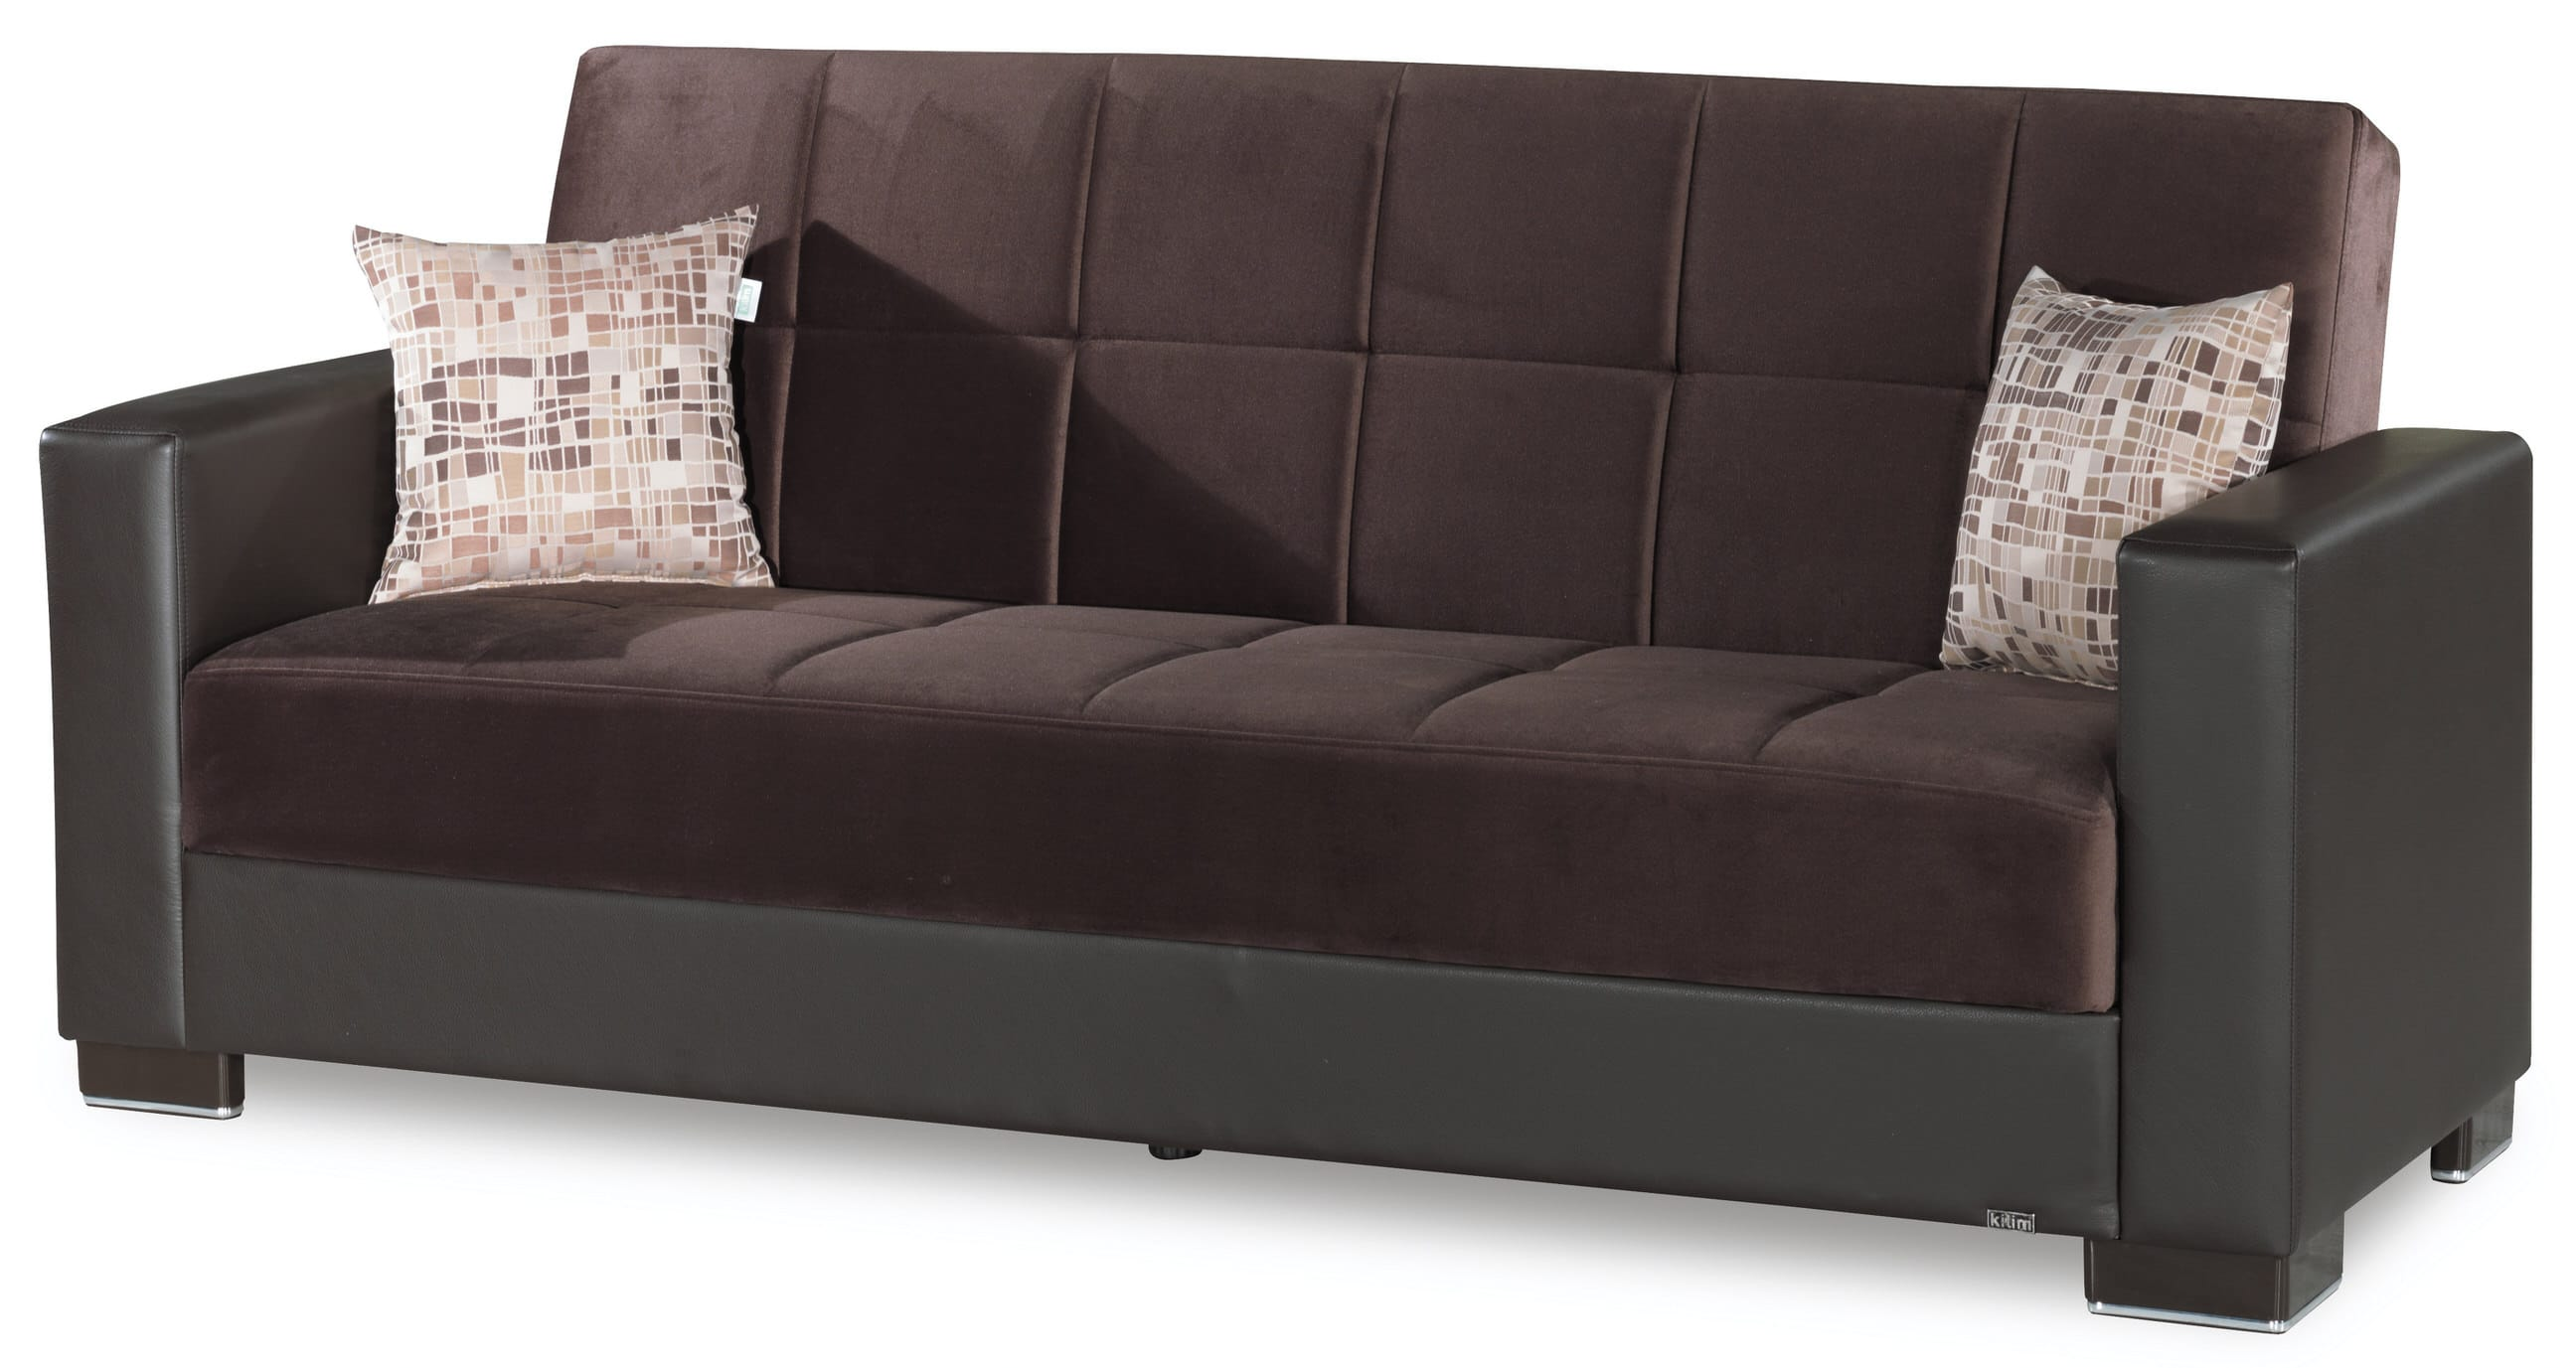 Armada Dark Brown Sofa Bed By Casamode